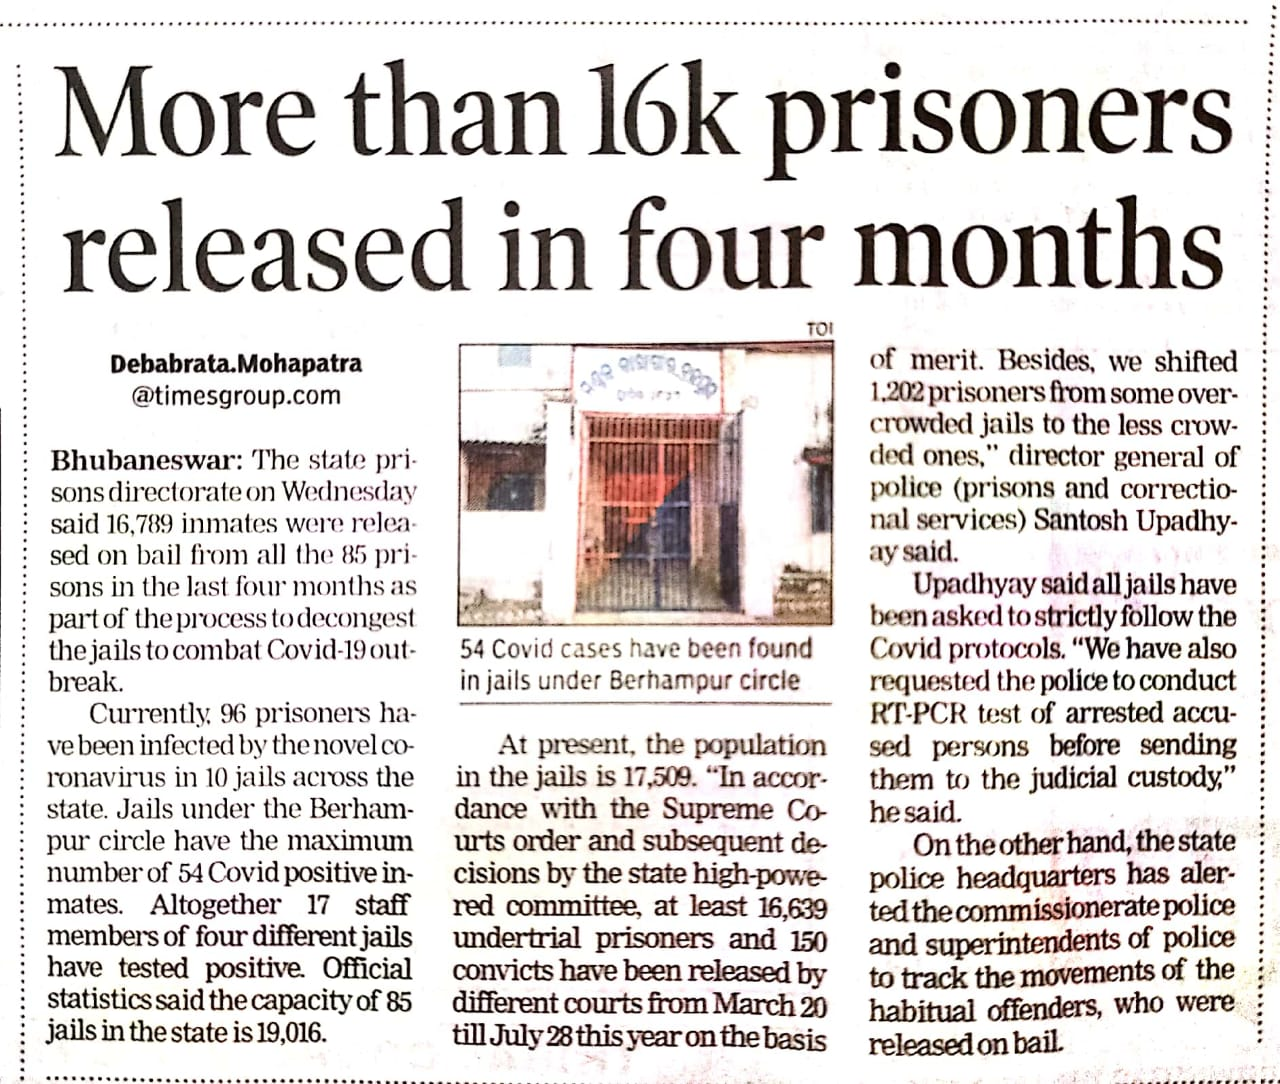 More than 16k prisoners released in four months.